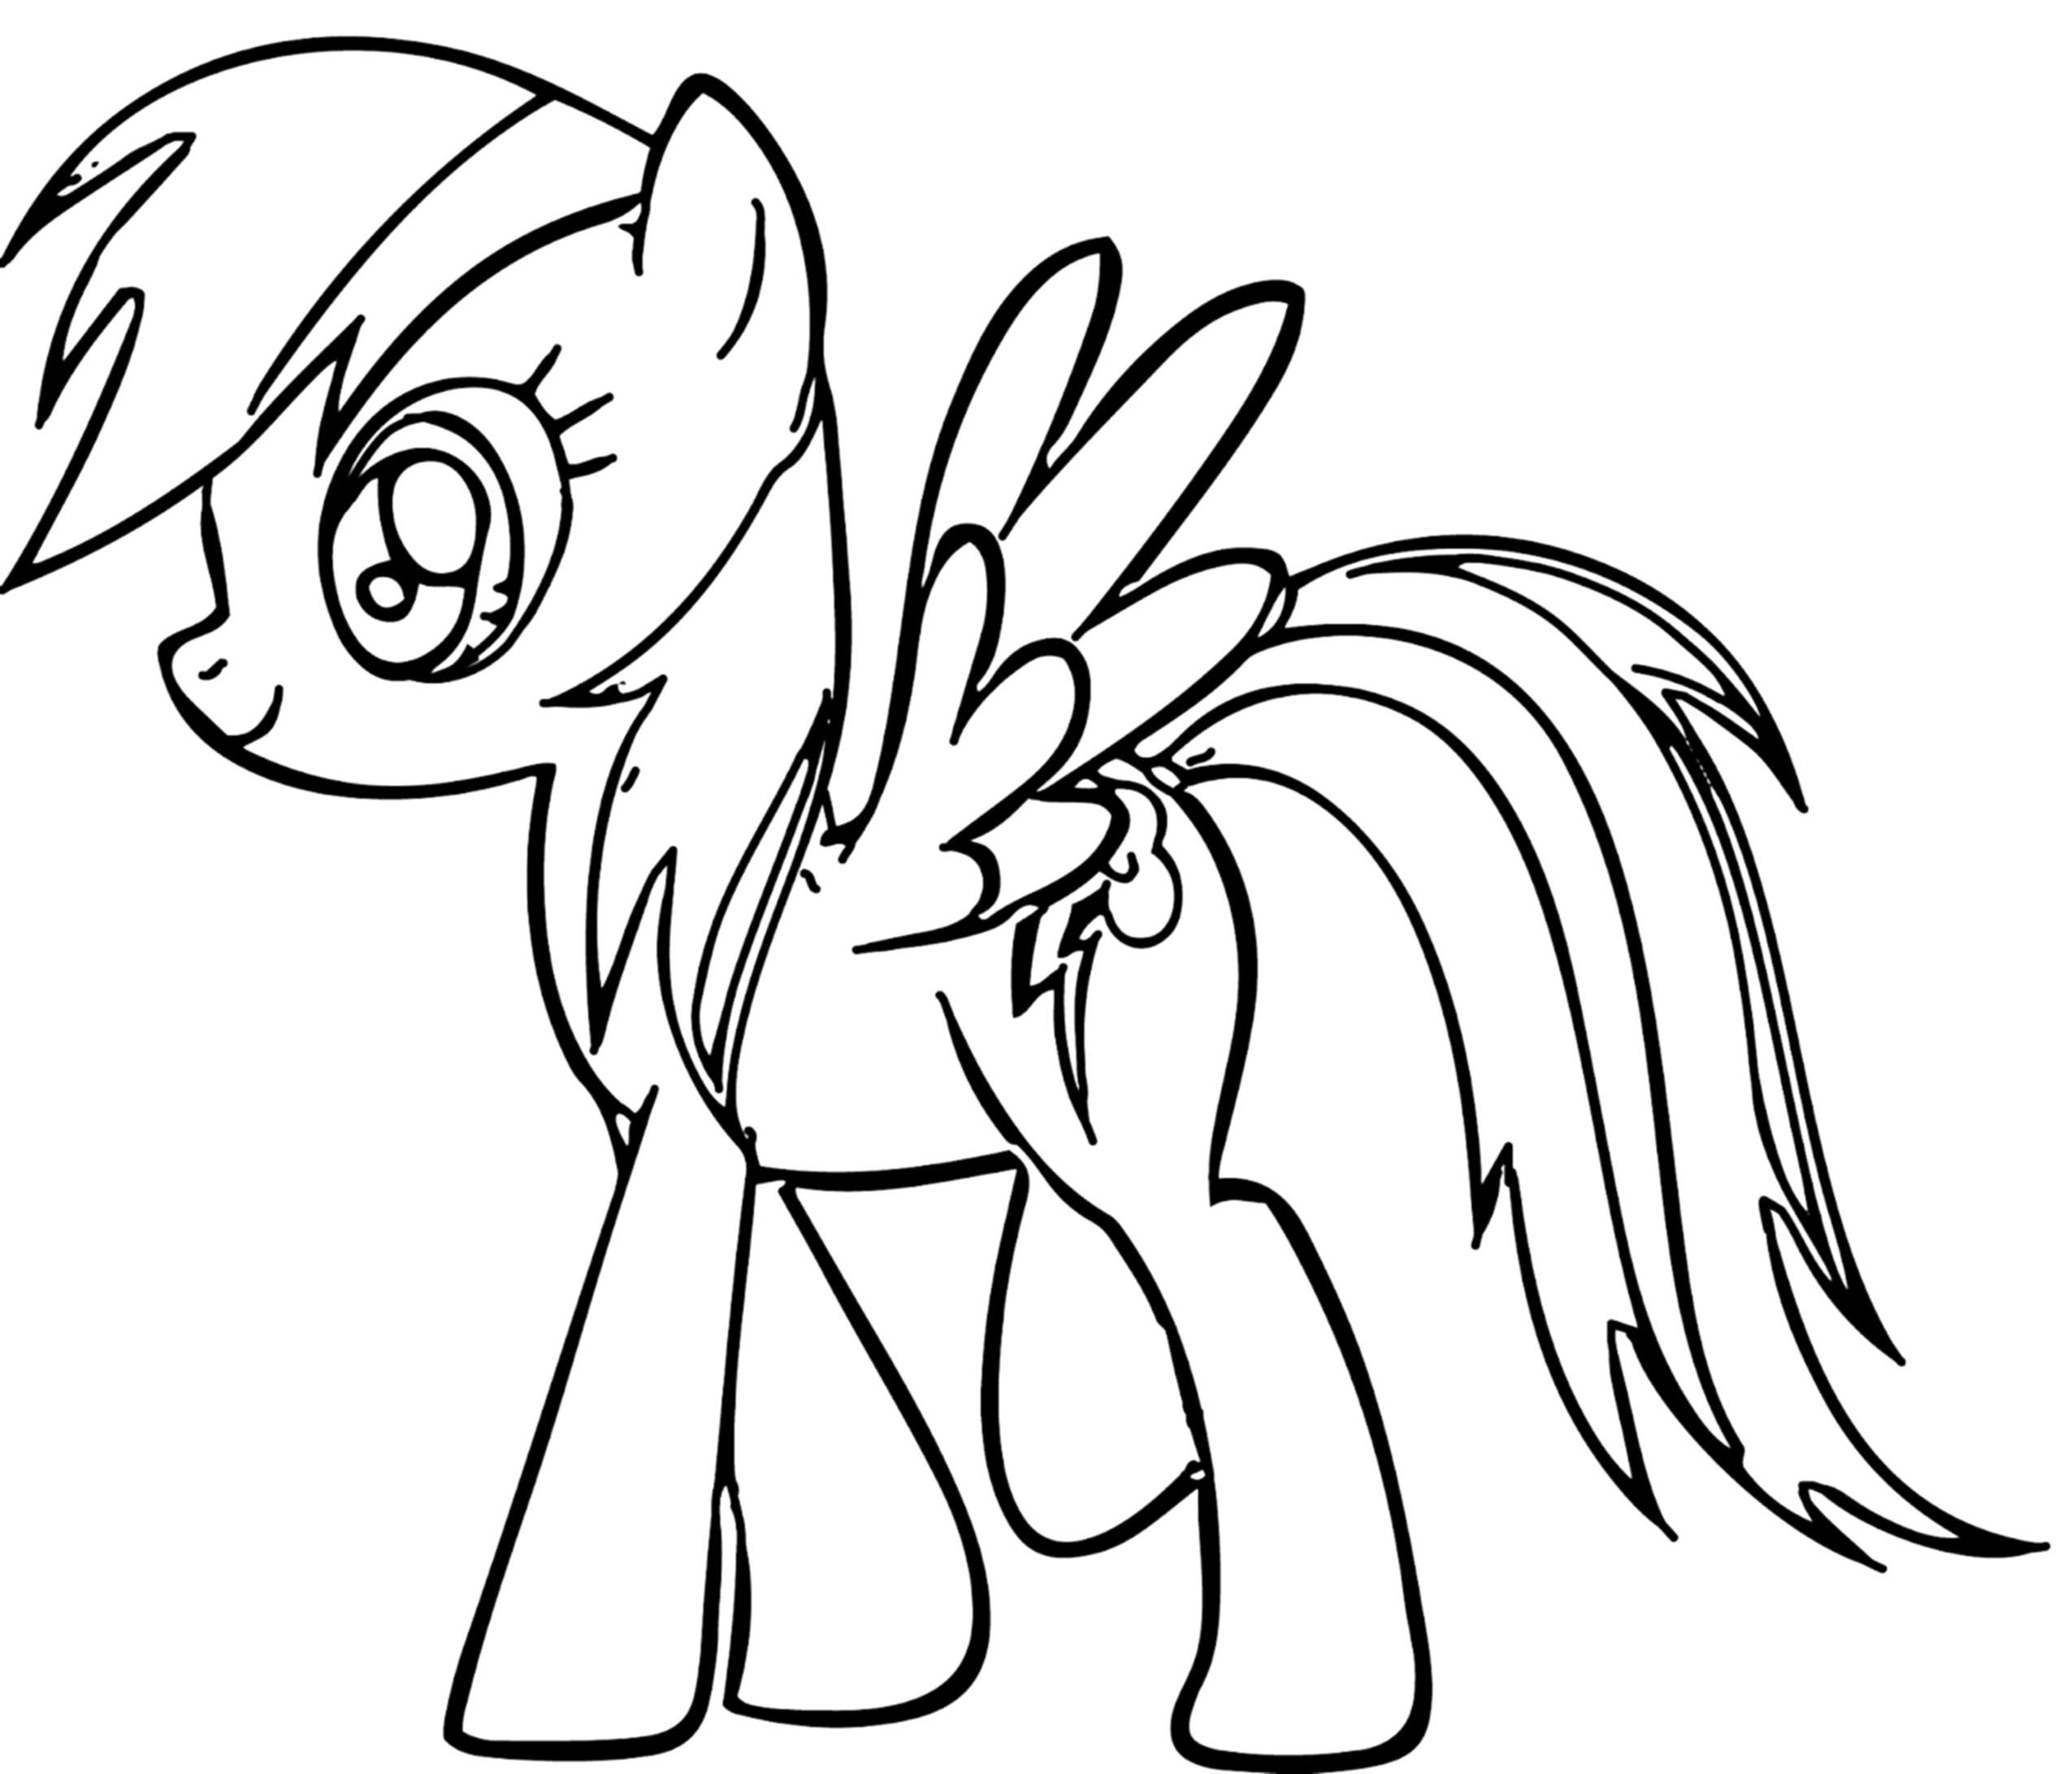 rainbow dash colouring pages element of loyalty rainbow dash coloring pages coloring pages colouring rainbow dash pages